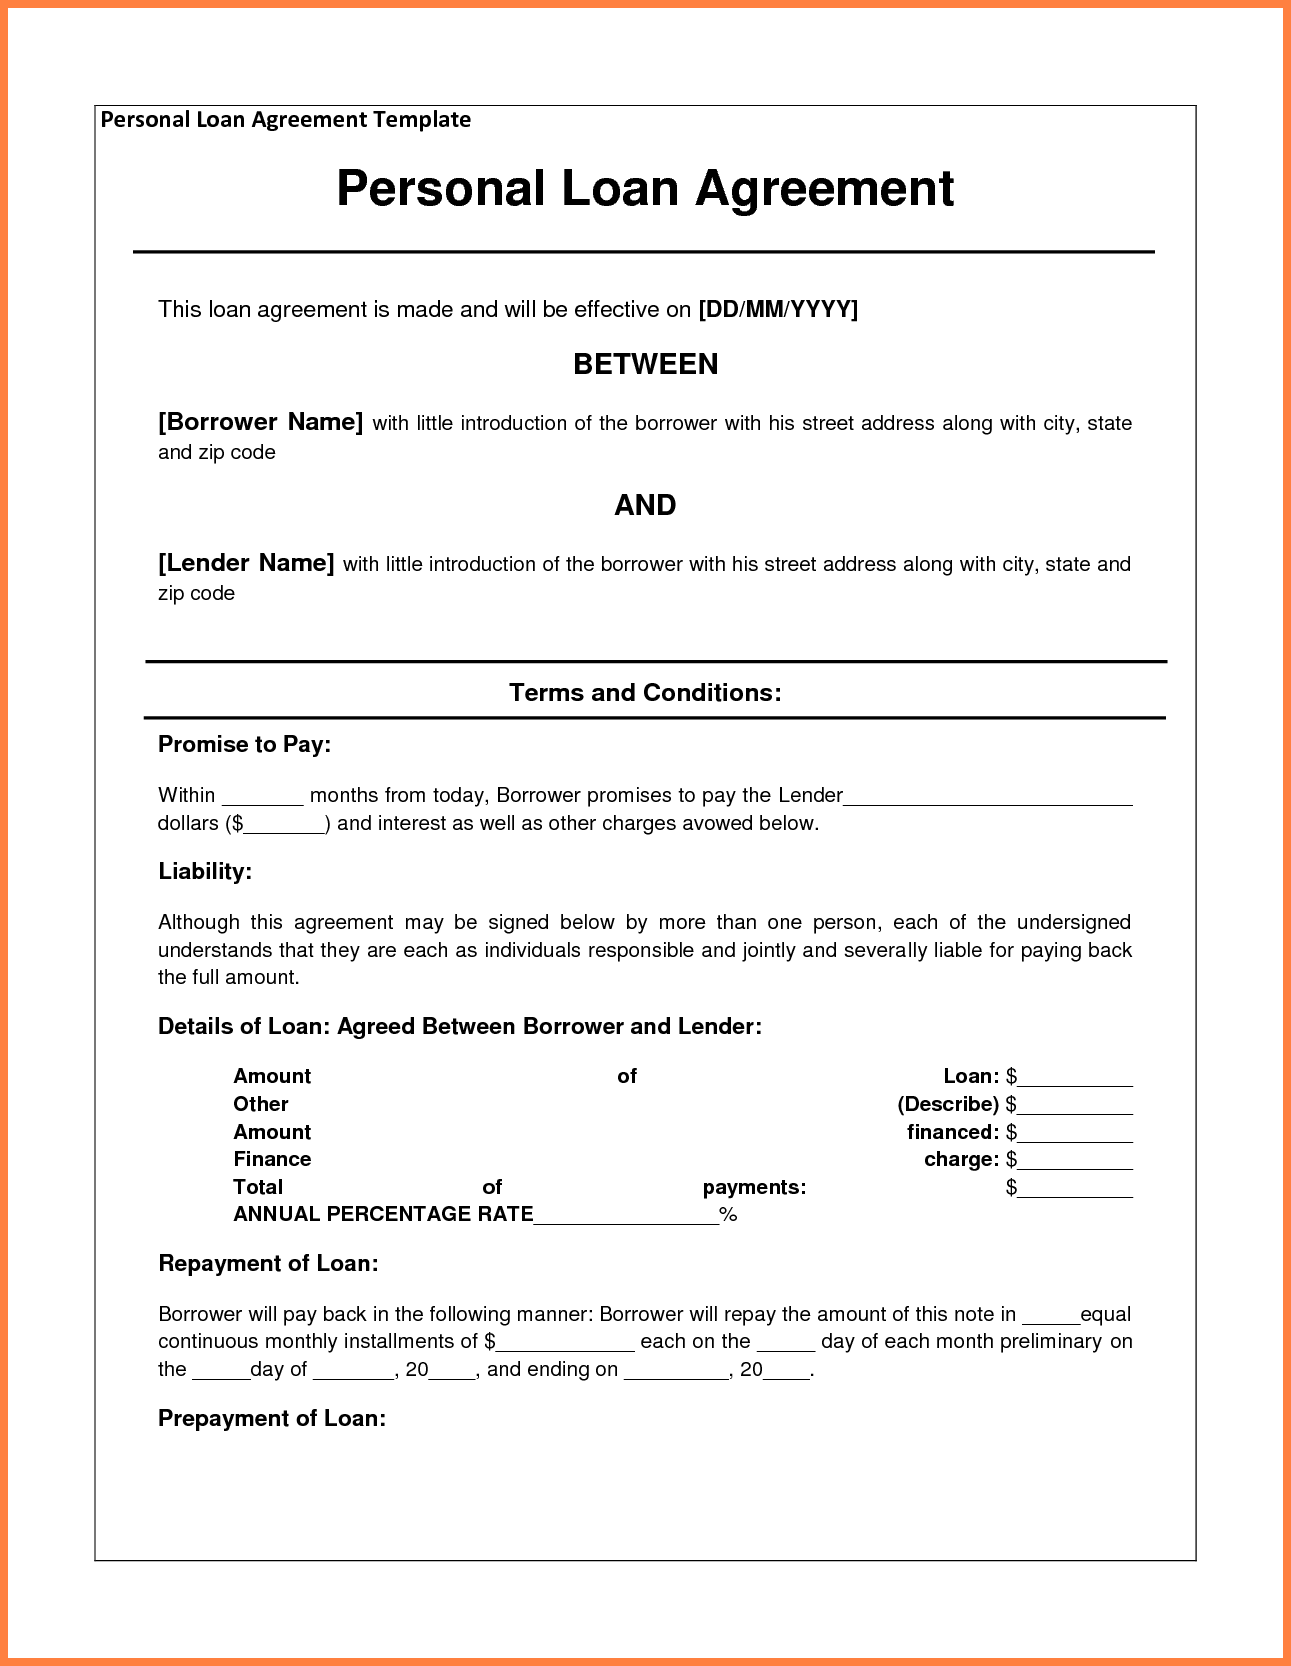 Personal Loan Agreement Between Friends Template